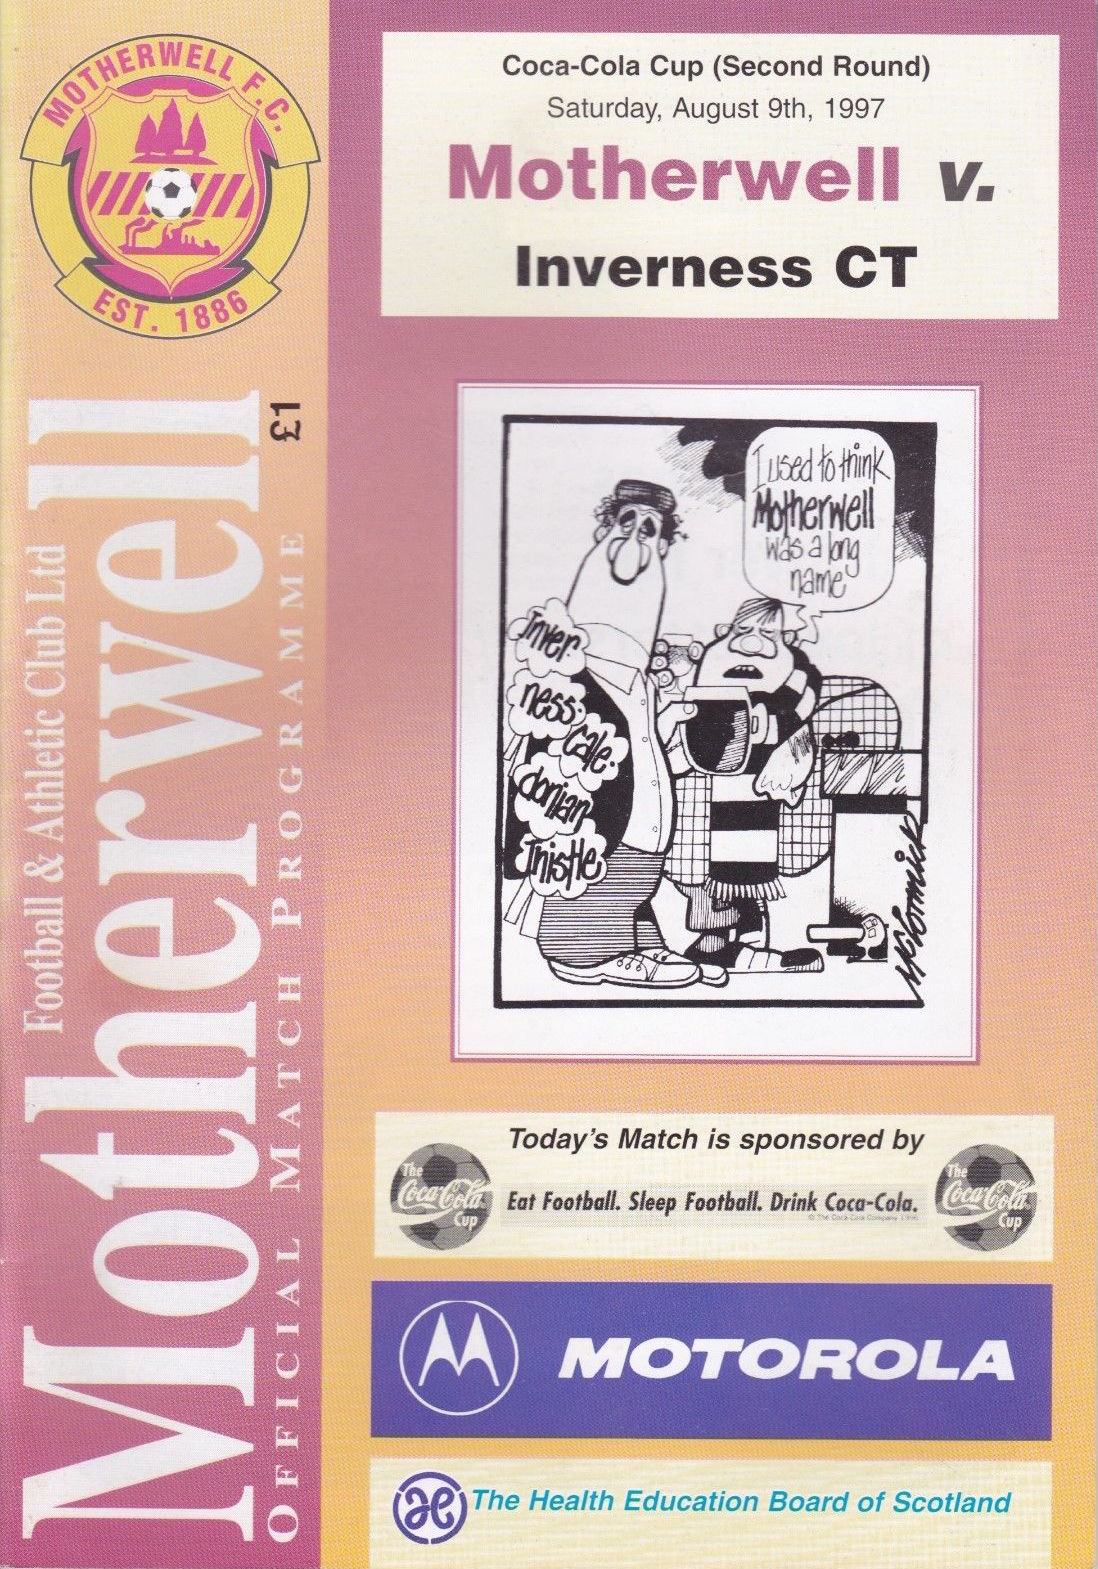 versus Inverness Programme Cover